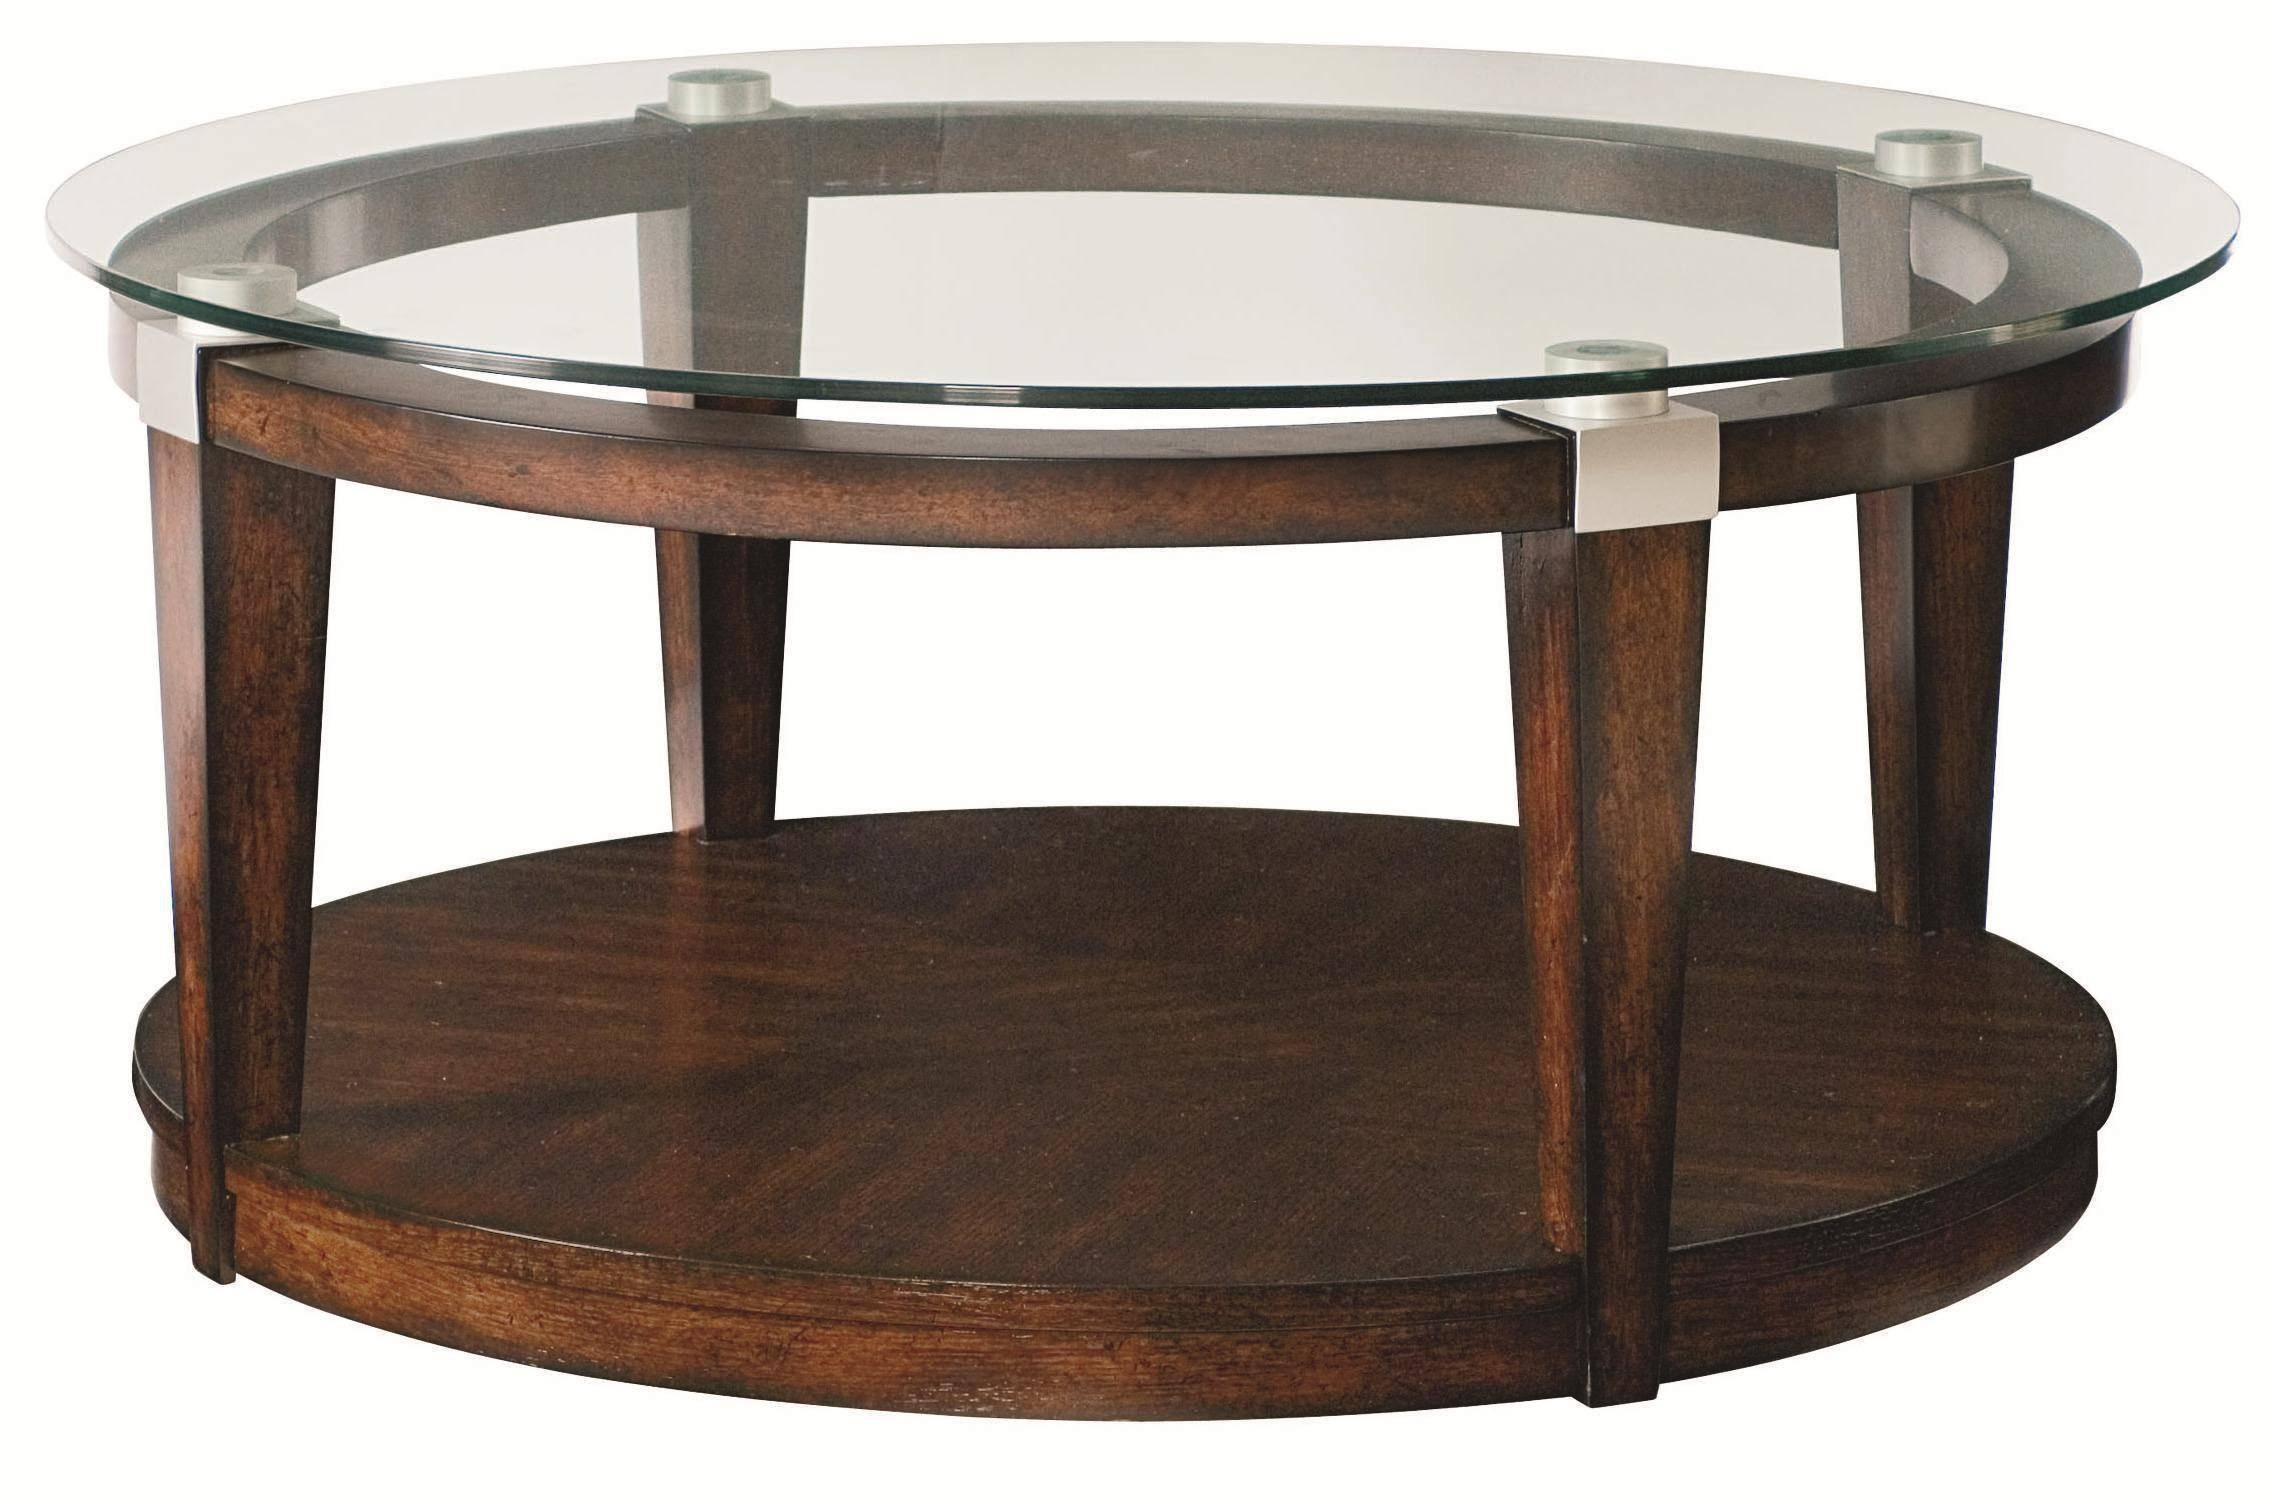 Modern Round Coffee Table. Table Modern Round Coffee Table With for Dark Wood Coffee Tables With Glass Top (Image 16 of 30)